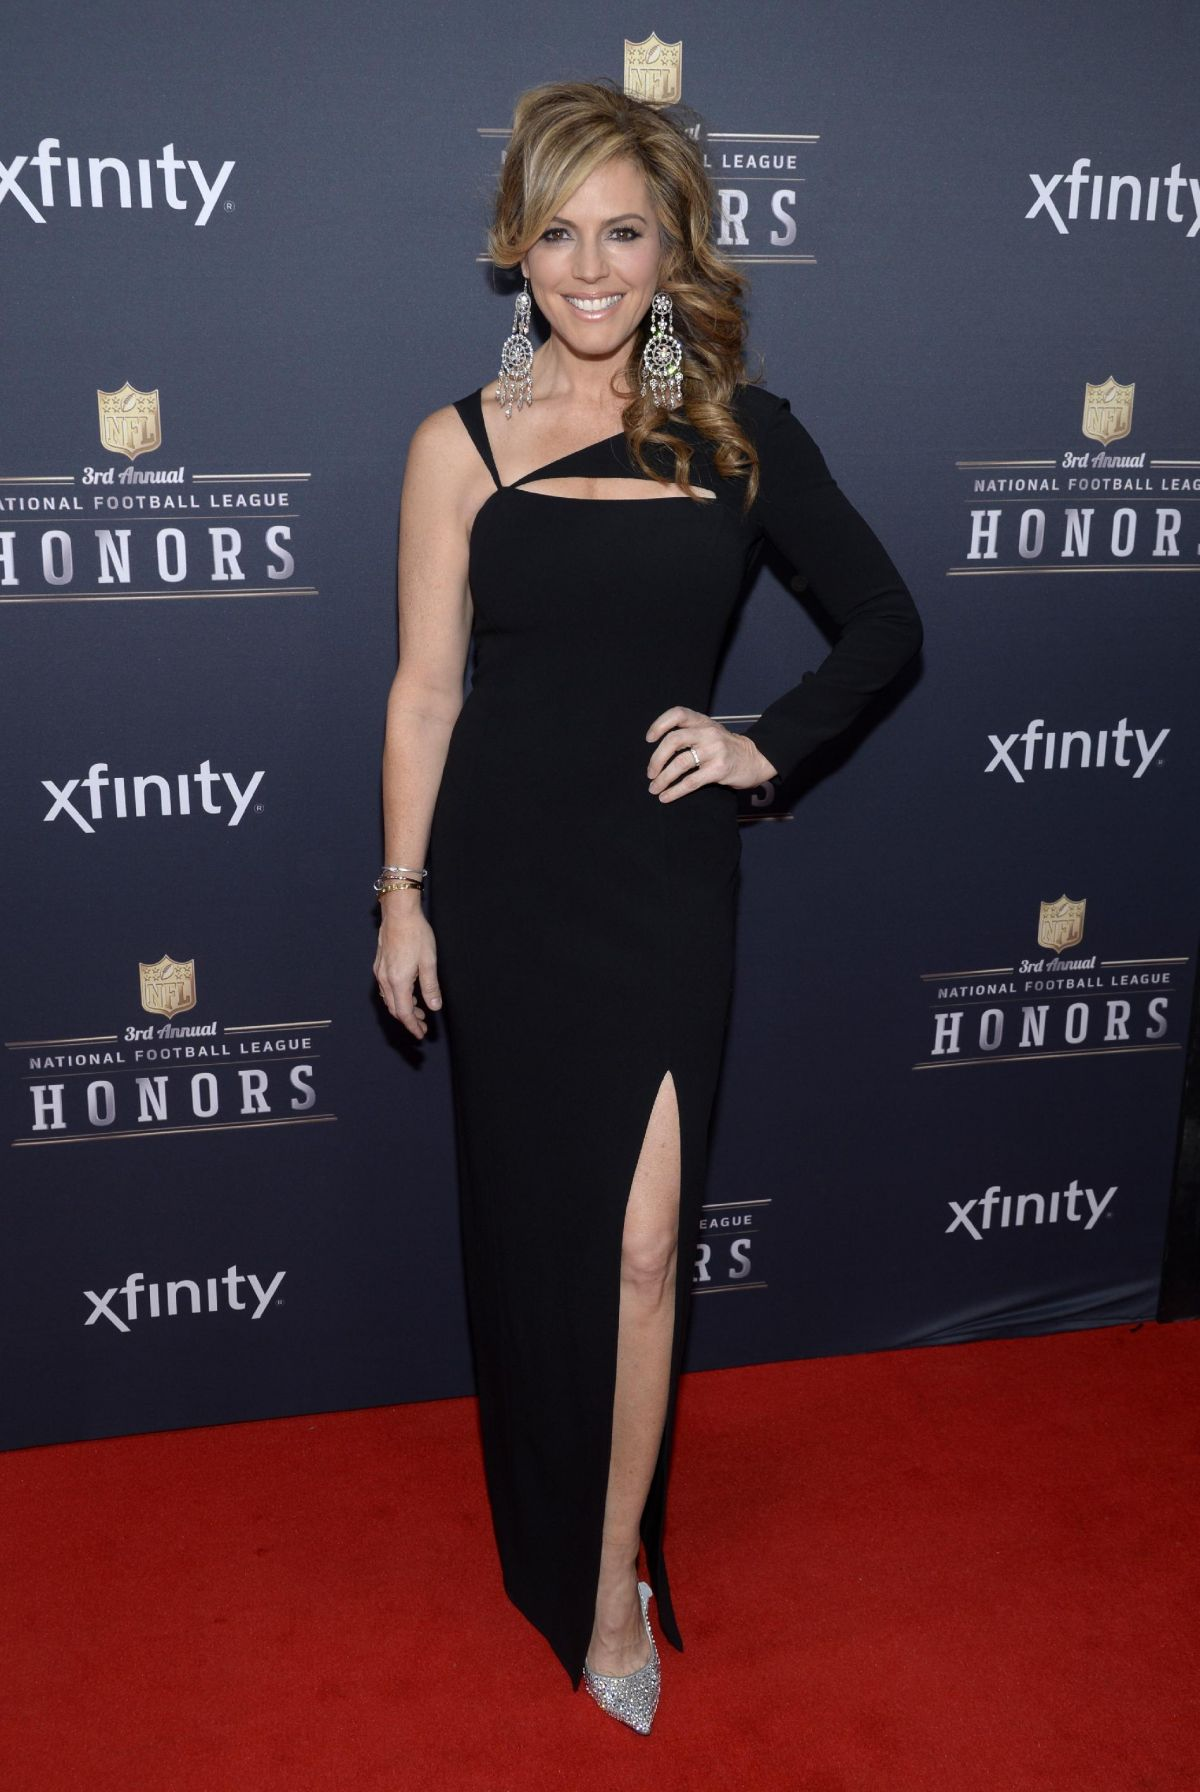 SANDRA TAYLOR at 3rd Annual NFL Honors in New York